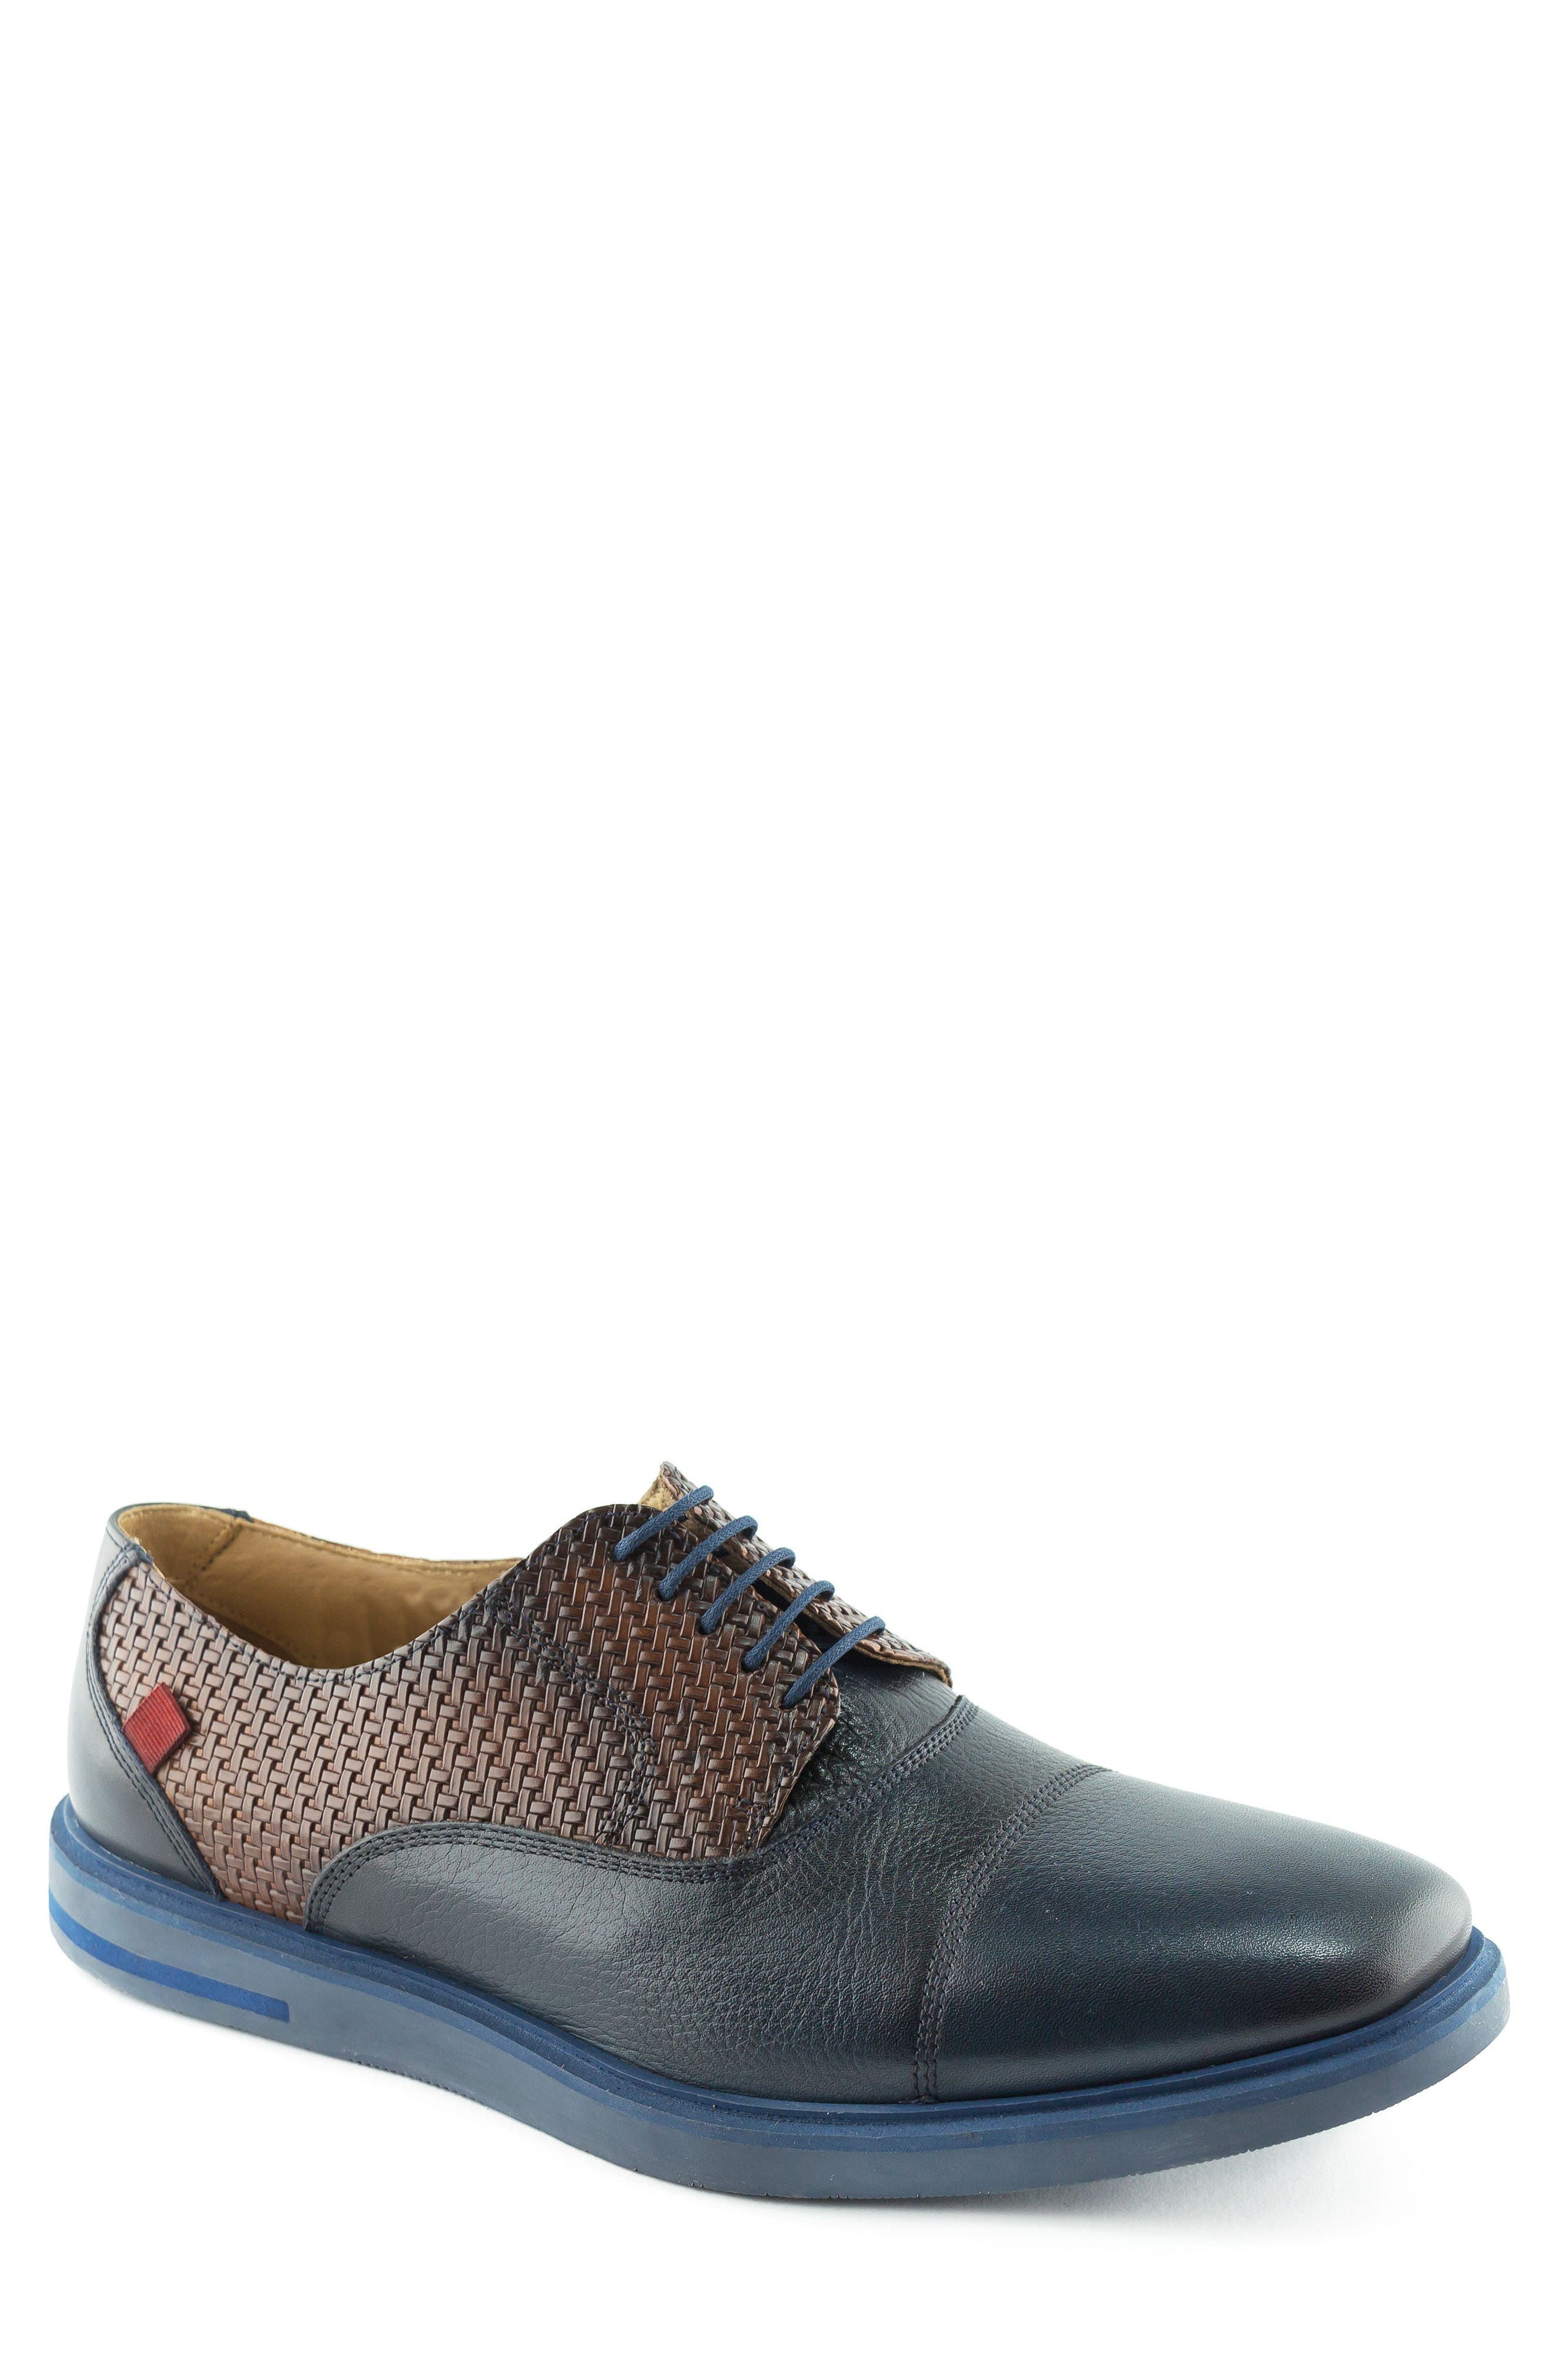 Manhattan Cap Toe Oxford,                         Main,                         color, Navy Leather